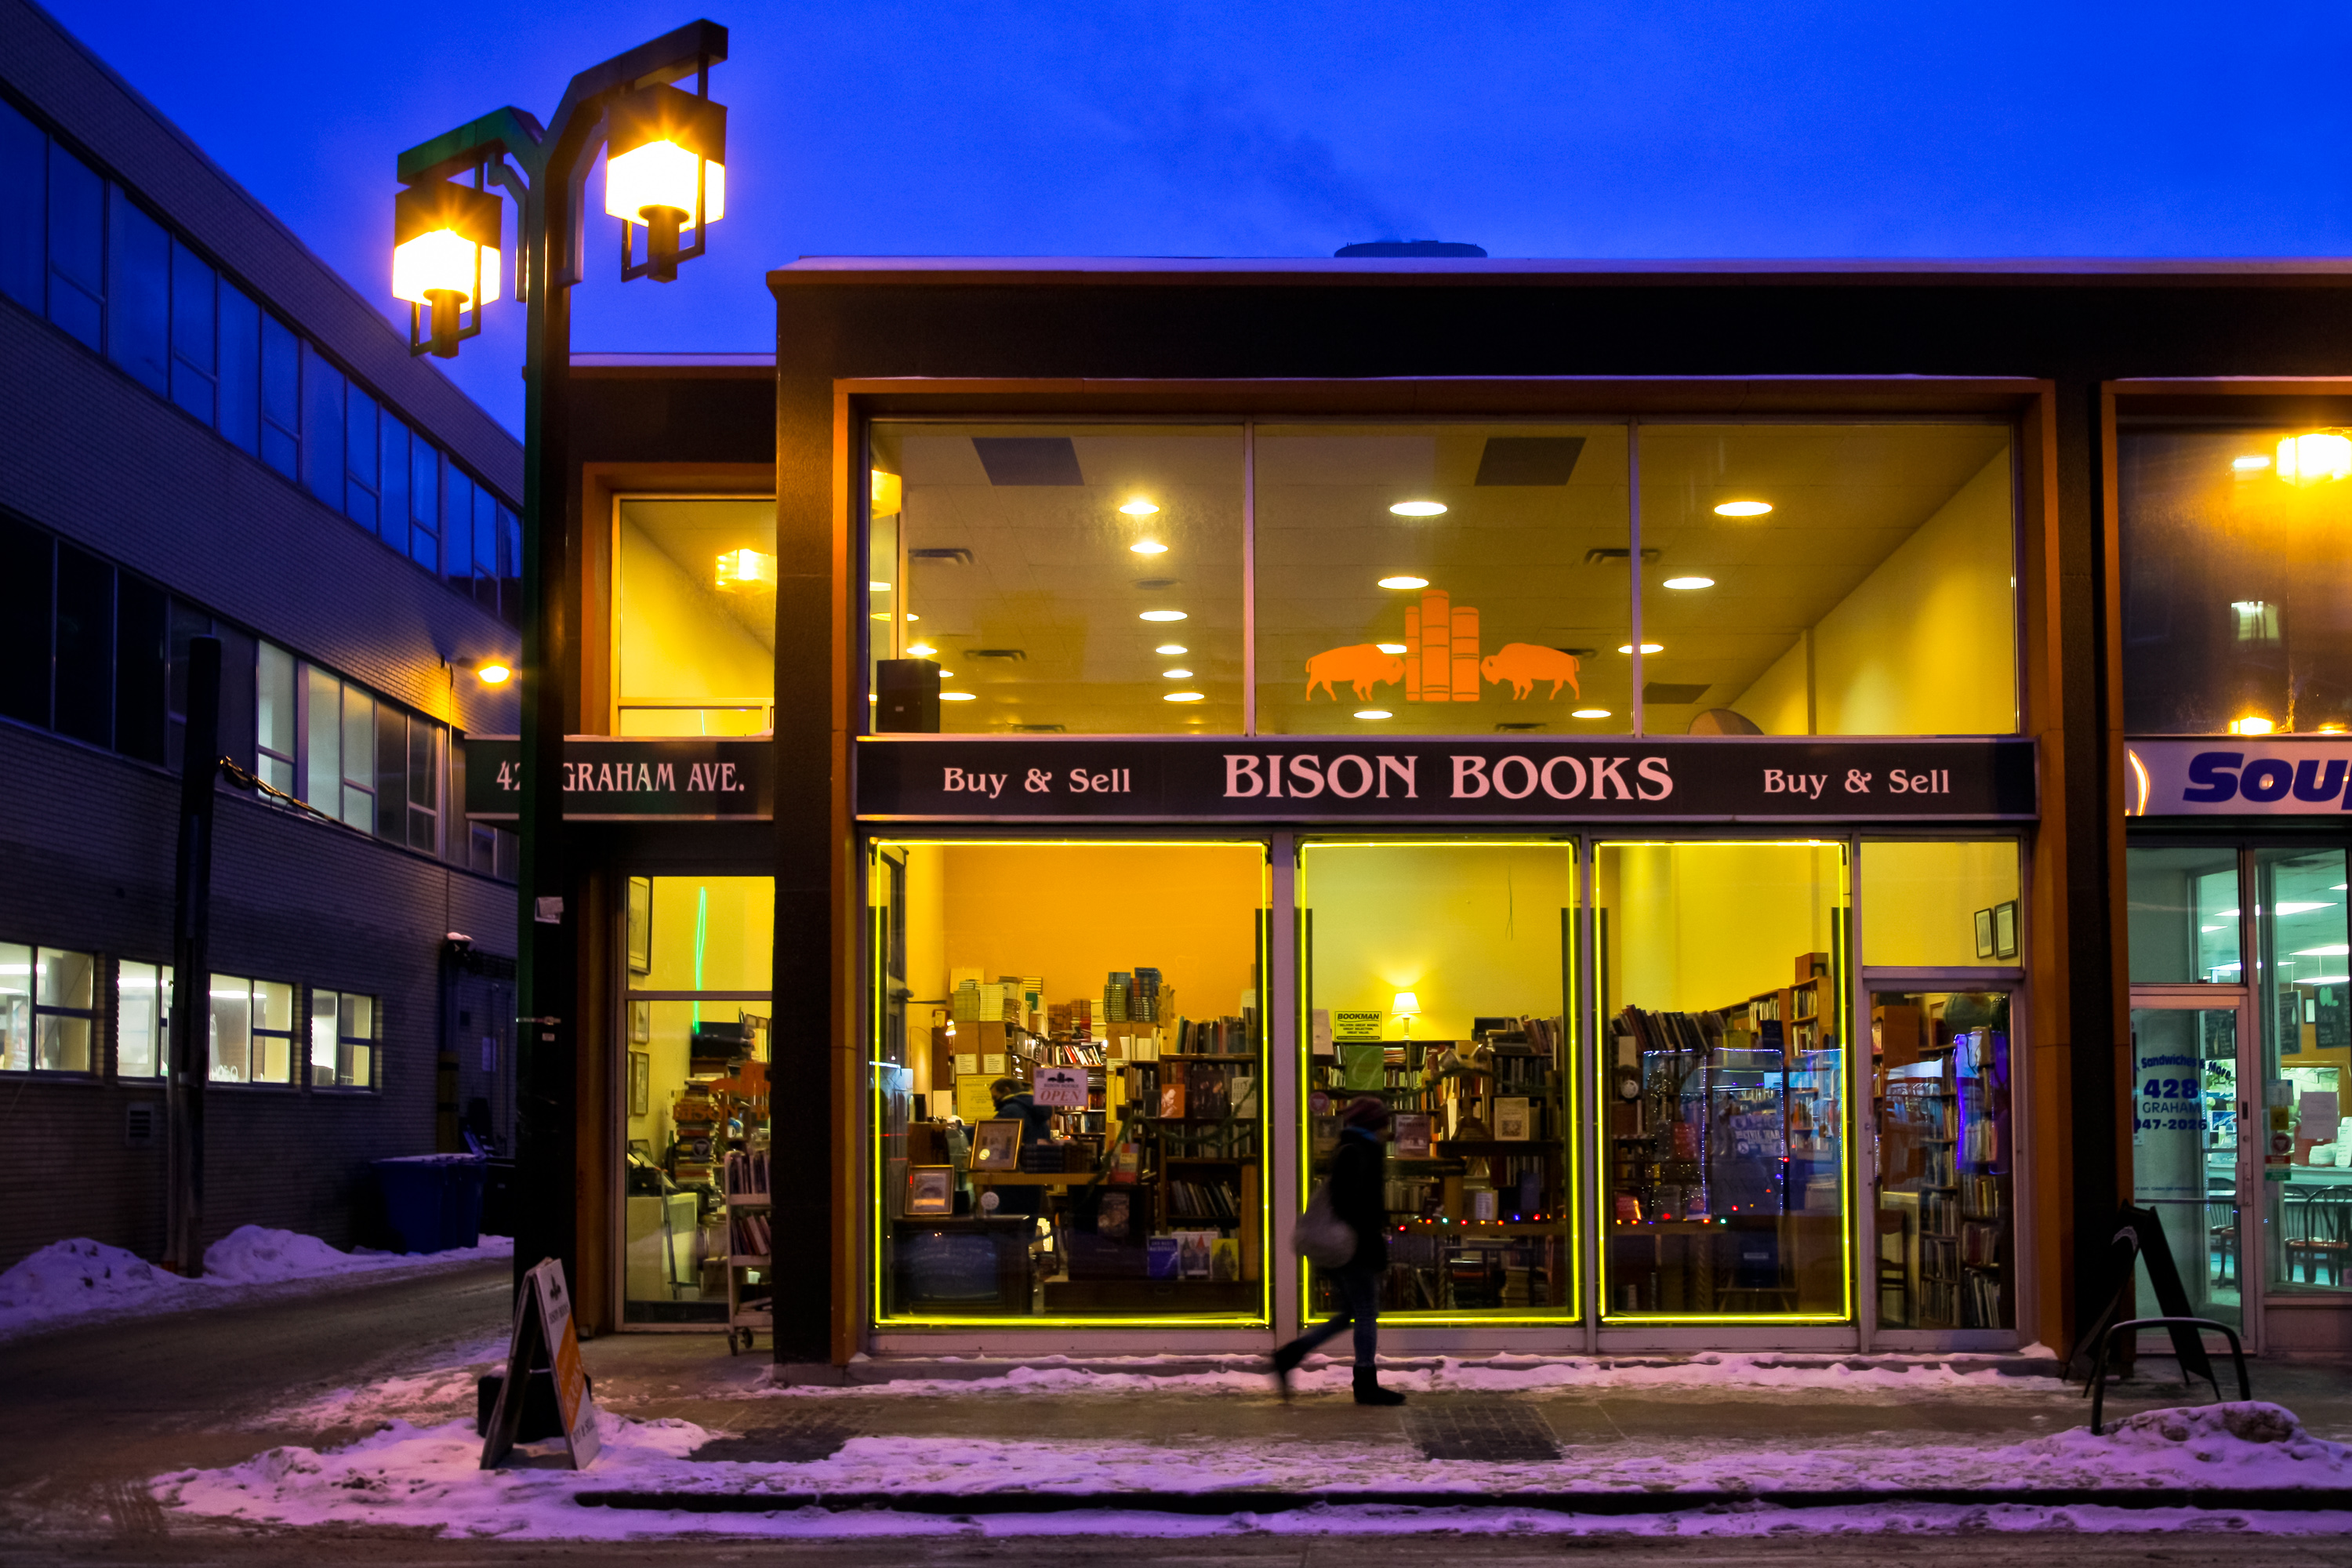 Bison Books